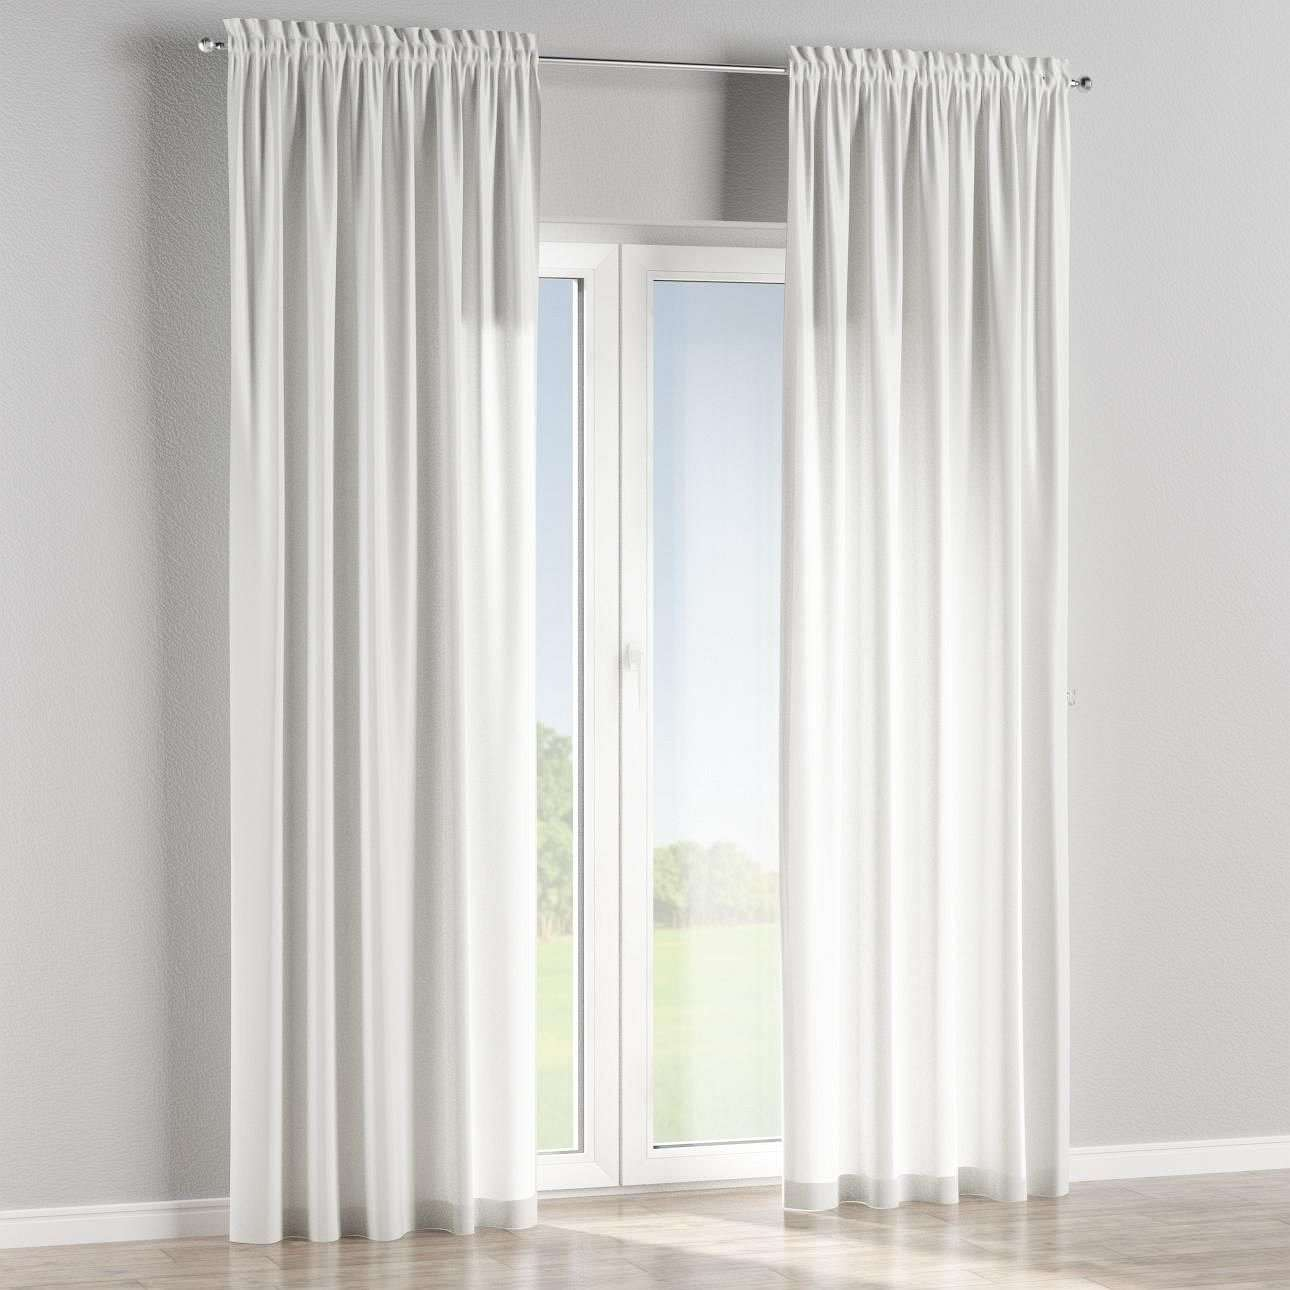 Slot and frill curtains in collection SALE, fabric: 130-05